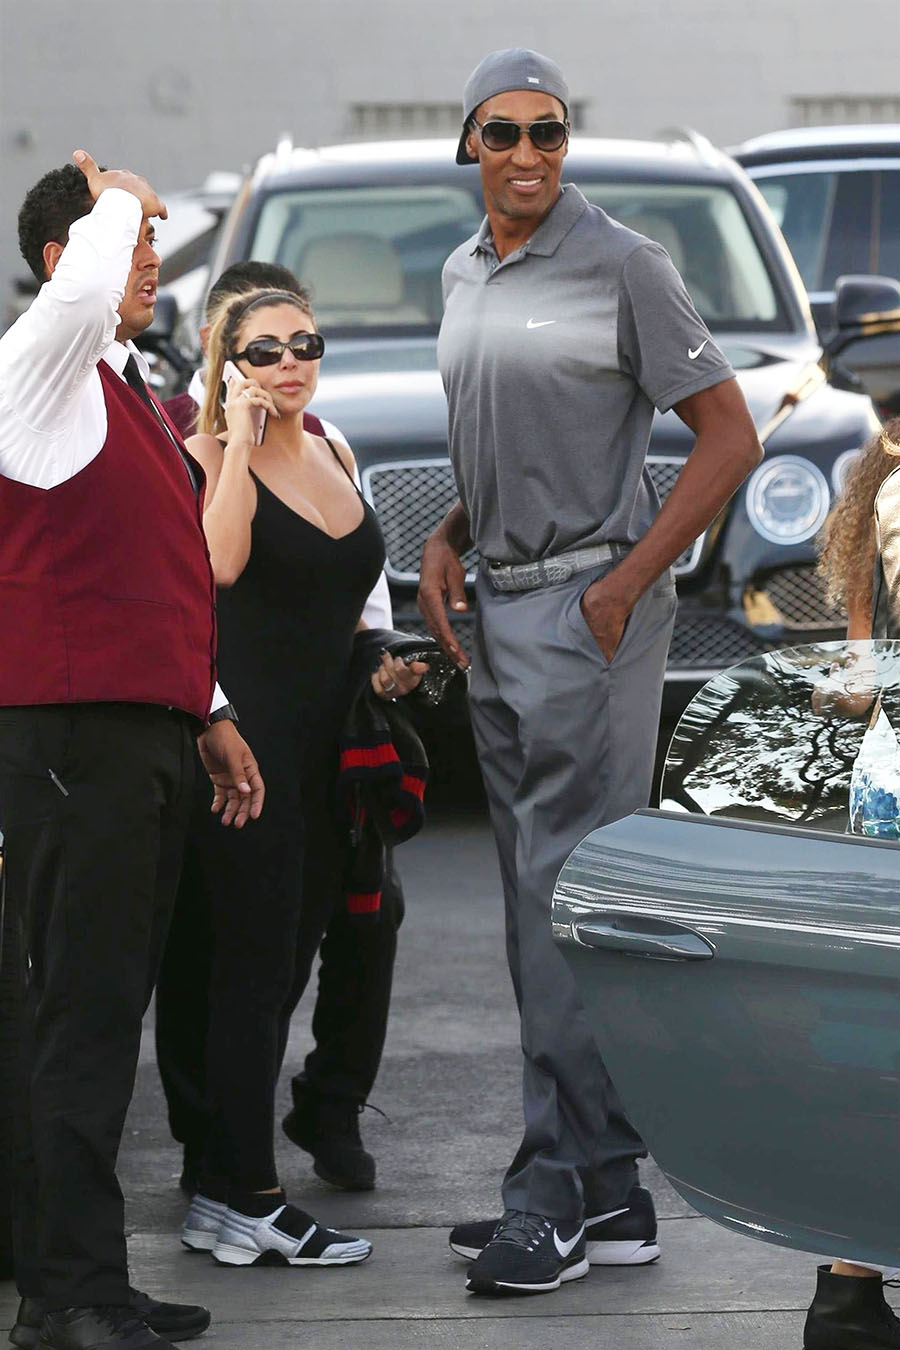 Scottie & Larsa Pippen